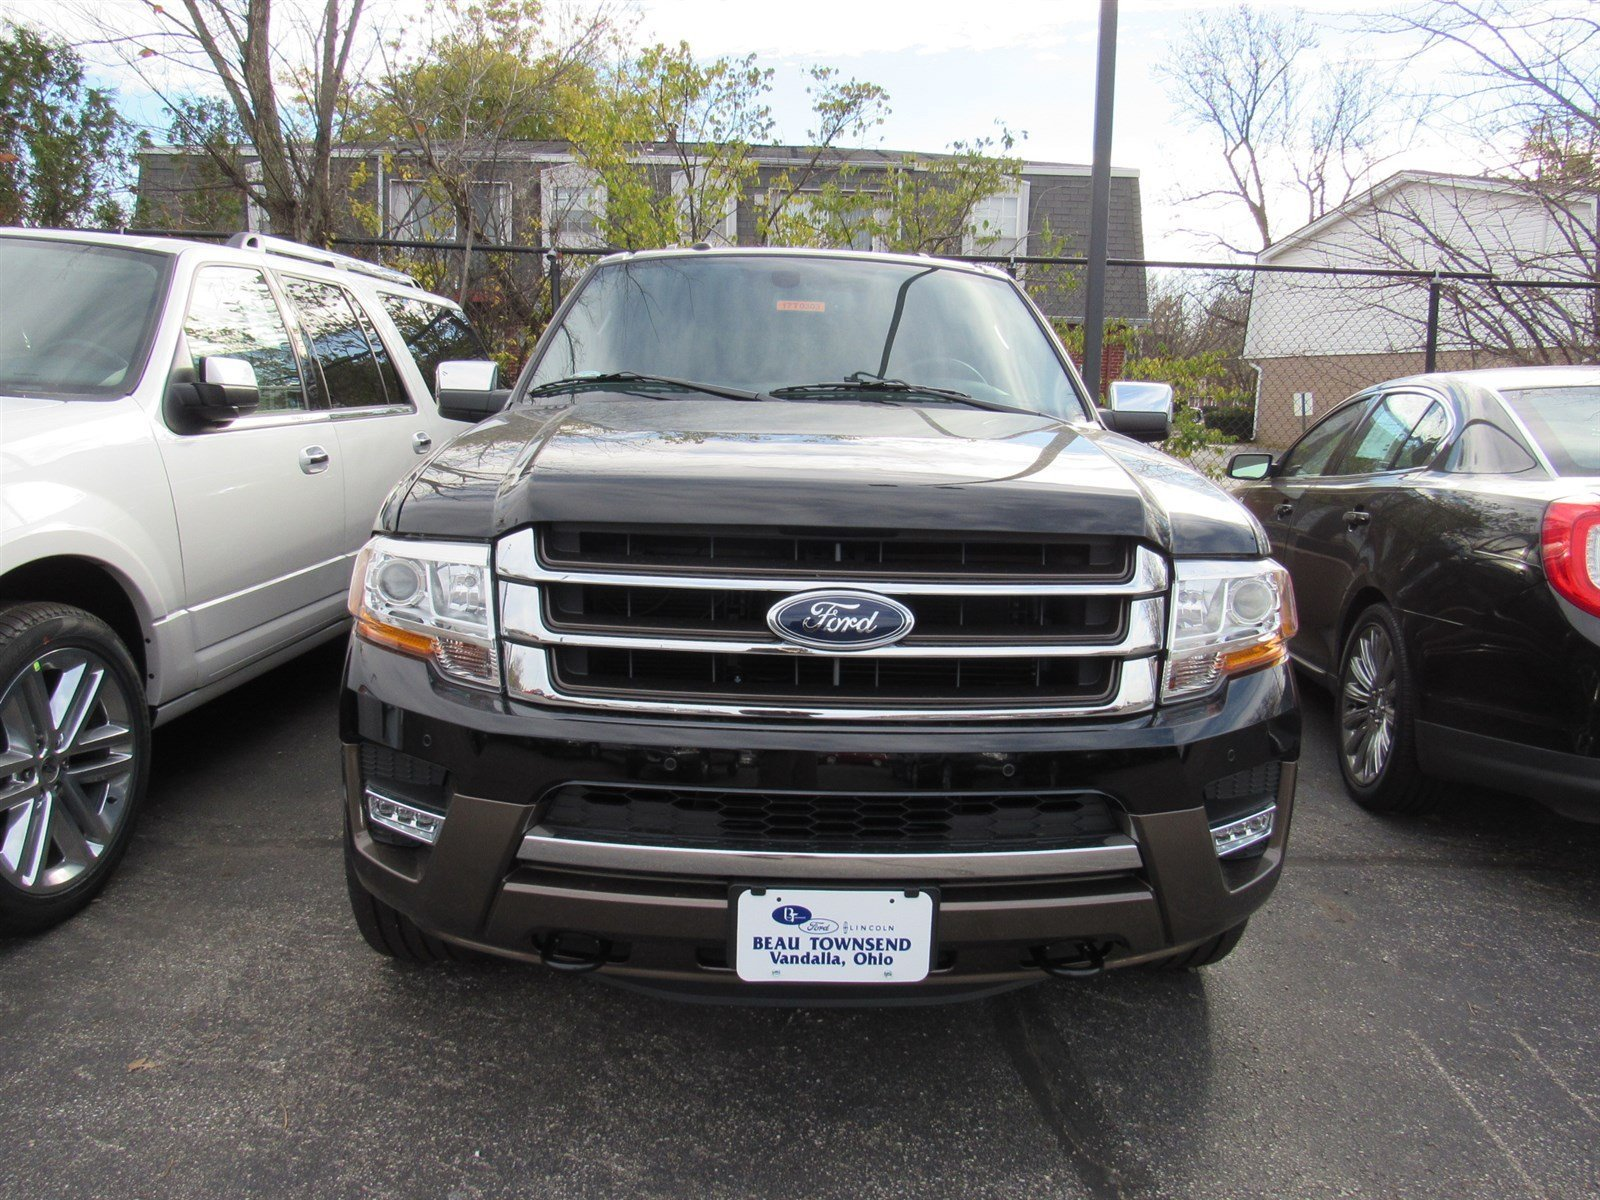 Beau Townsend Ford >> Beau Townsend Ford Lincoln Ford Dealership Vandalia Oh | Autos Post